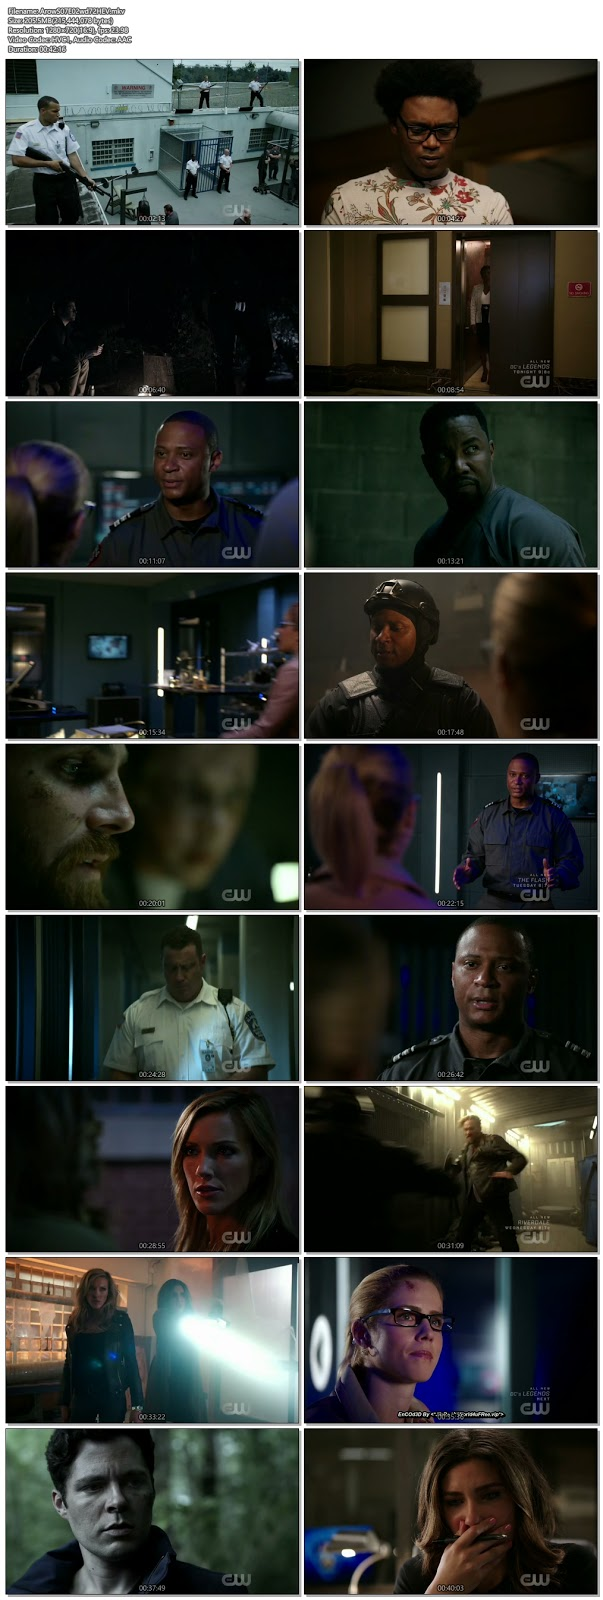 Arrow 2017 S07 Episode 02 720p HDTV 200MB ESub x265 HEVC, hollwood tv series Arrow S08 Episode 01 720p hdtv tv show hevc x265 hdrip 250mb 270mb free download or watch online at world4ufree.fun